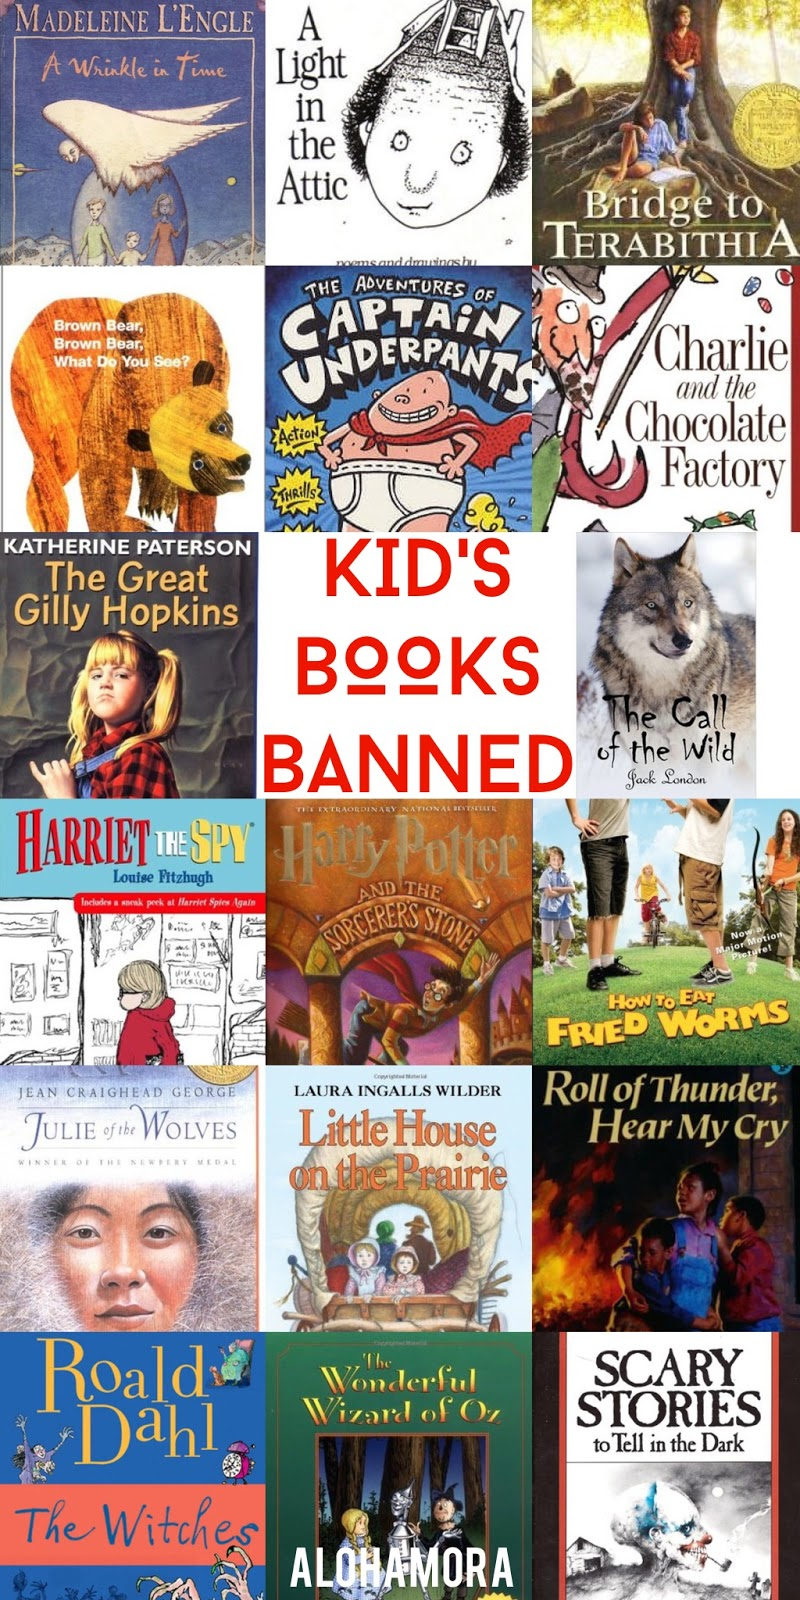 Children's/Juvenile/Kids Books that have been Banned.  A fabulous book list of banned books that are absolutely great reads for all sorts of difficul reasons.  This book list is to celebrate Banned Book Week.  A great list of books boys, girls, reluctant readers, and elementary to middle school students alike will enjoy.  Alohamora Open a Book http://www.alohamoraopenabook.blogspot.com/